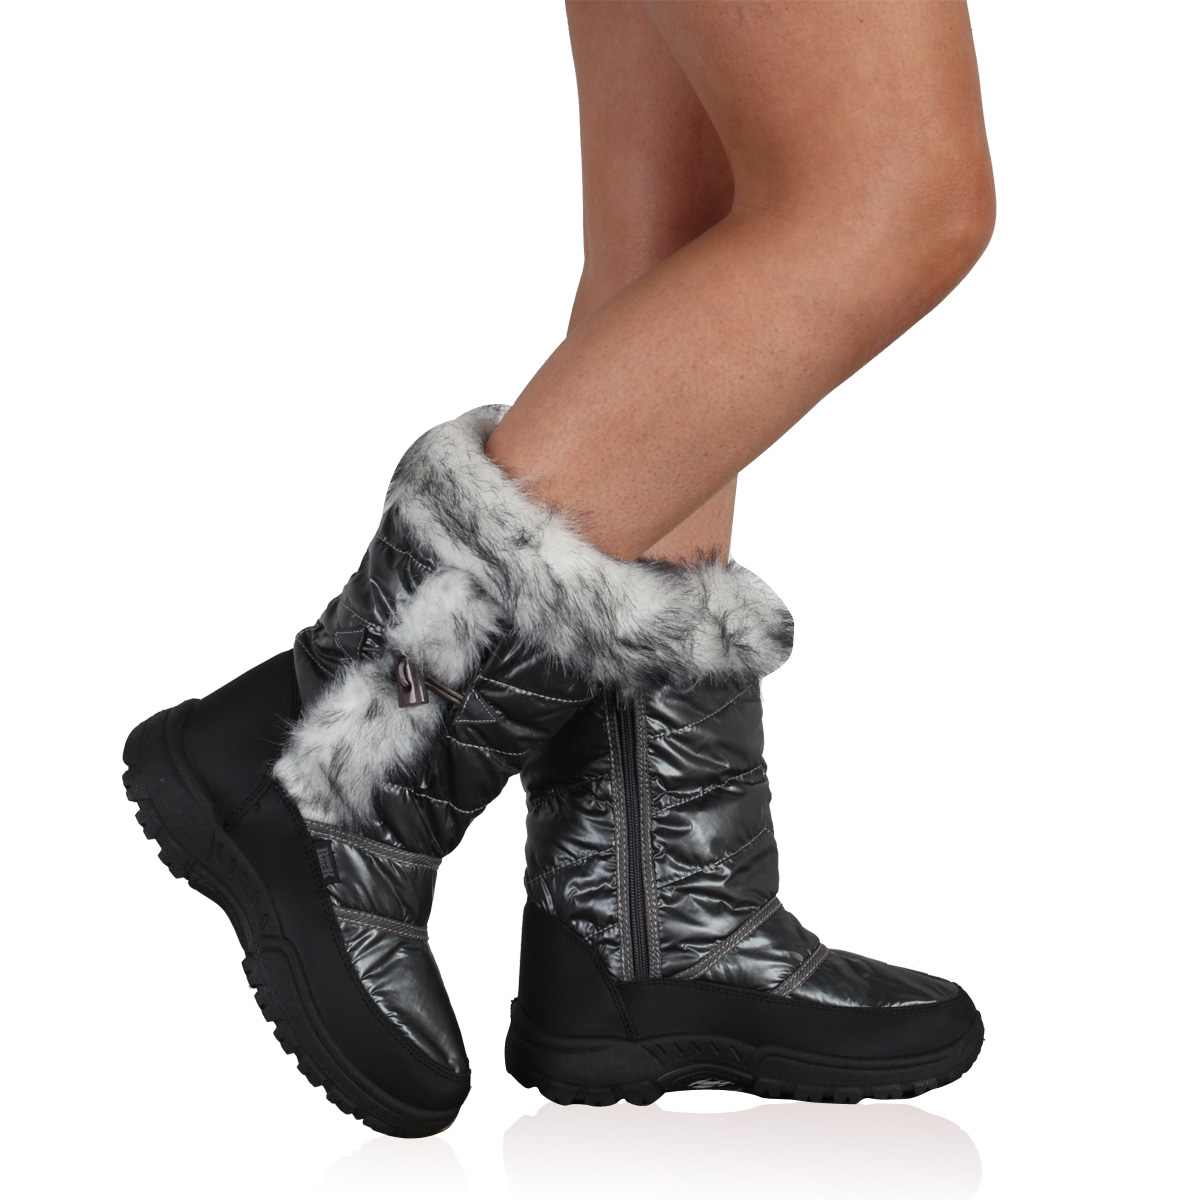 Womens Snow Boots With Grips